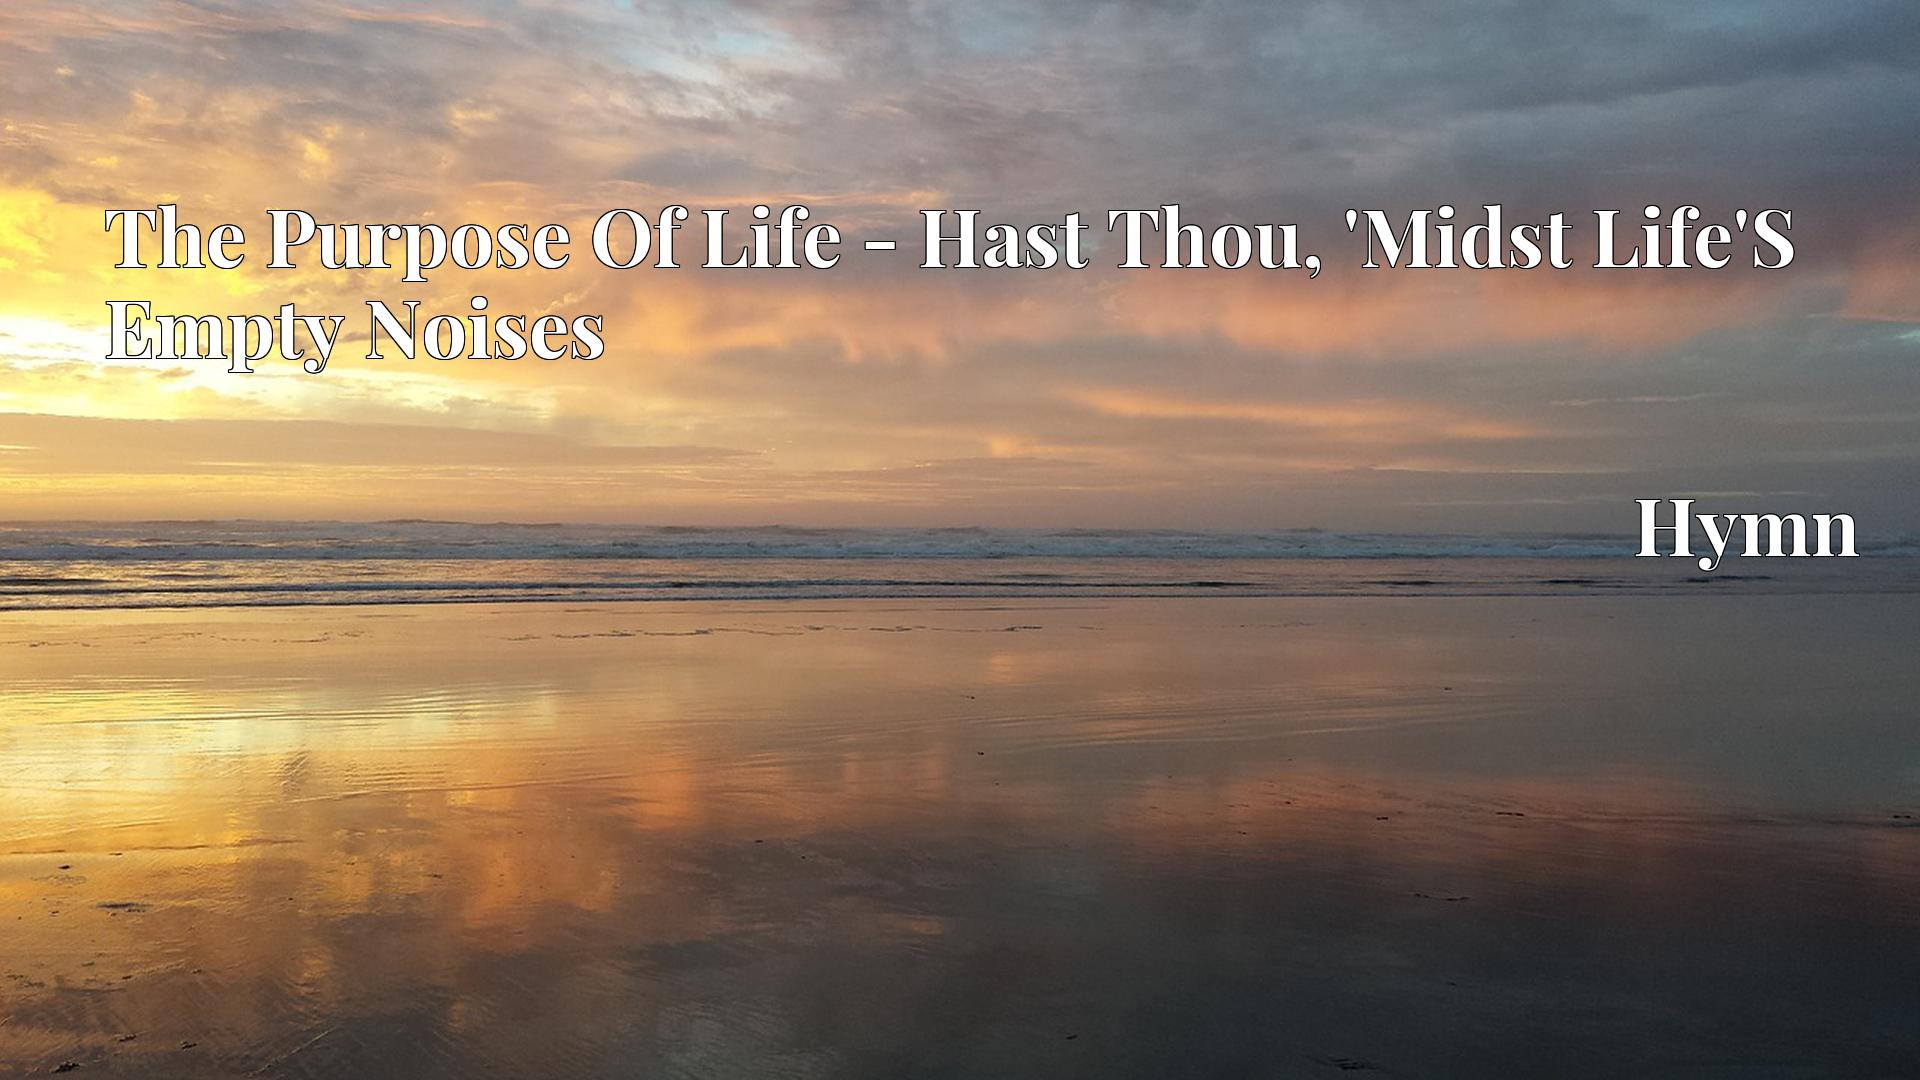 The Purpose Of Life - Hast Thou, 'Midst Life'S Empty Noises - Hymn